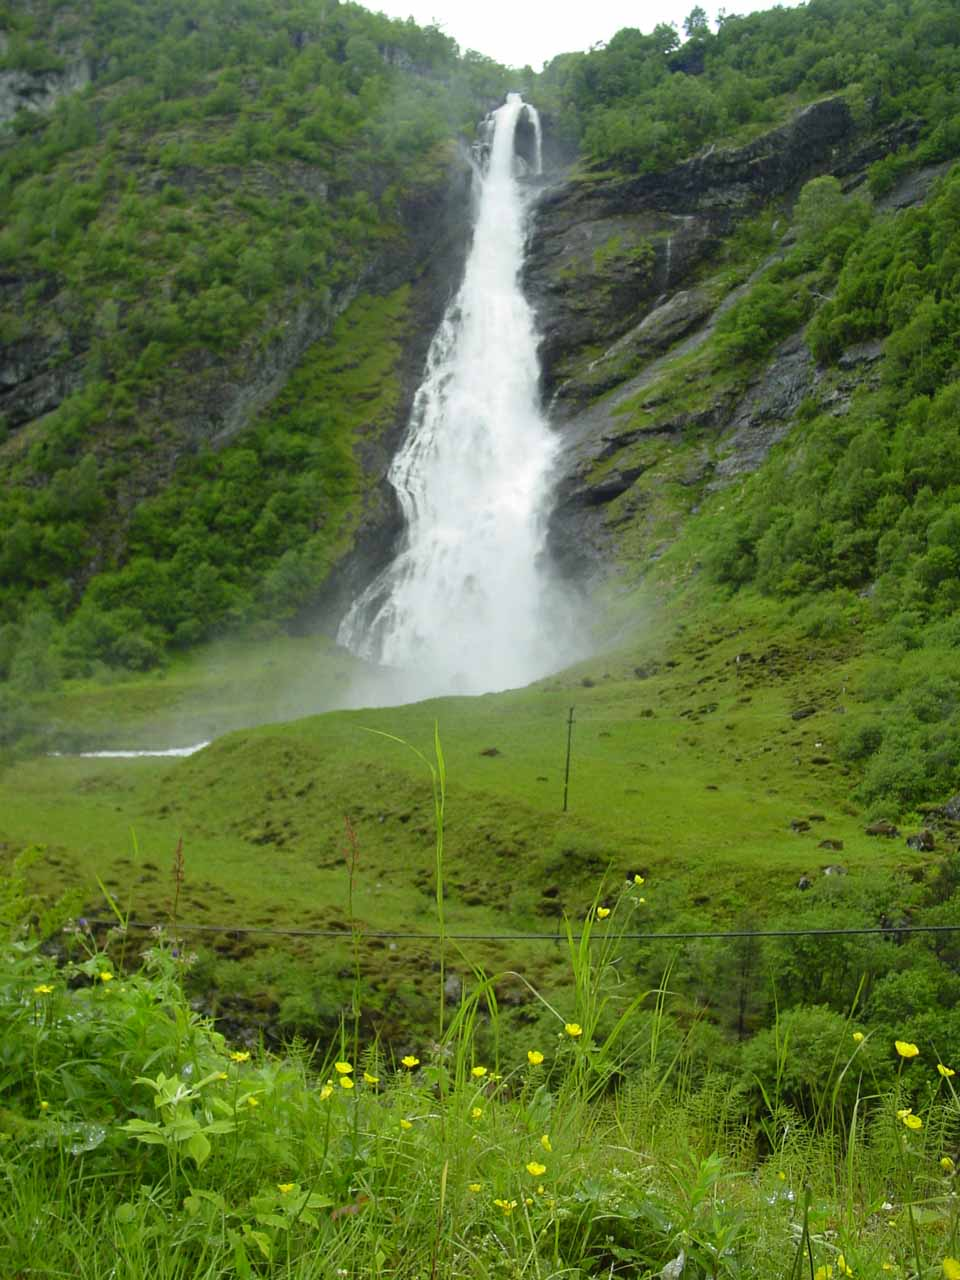 Direct view of Avdalsfossen with wildflowers blooming before us